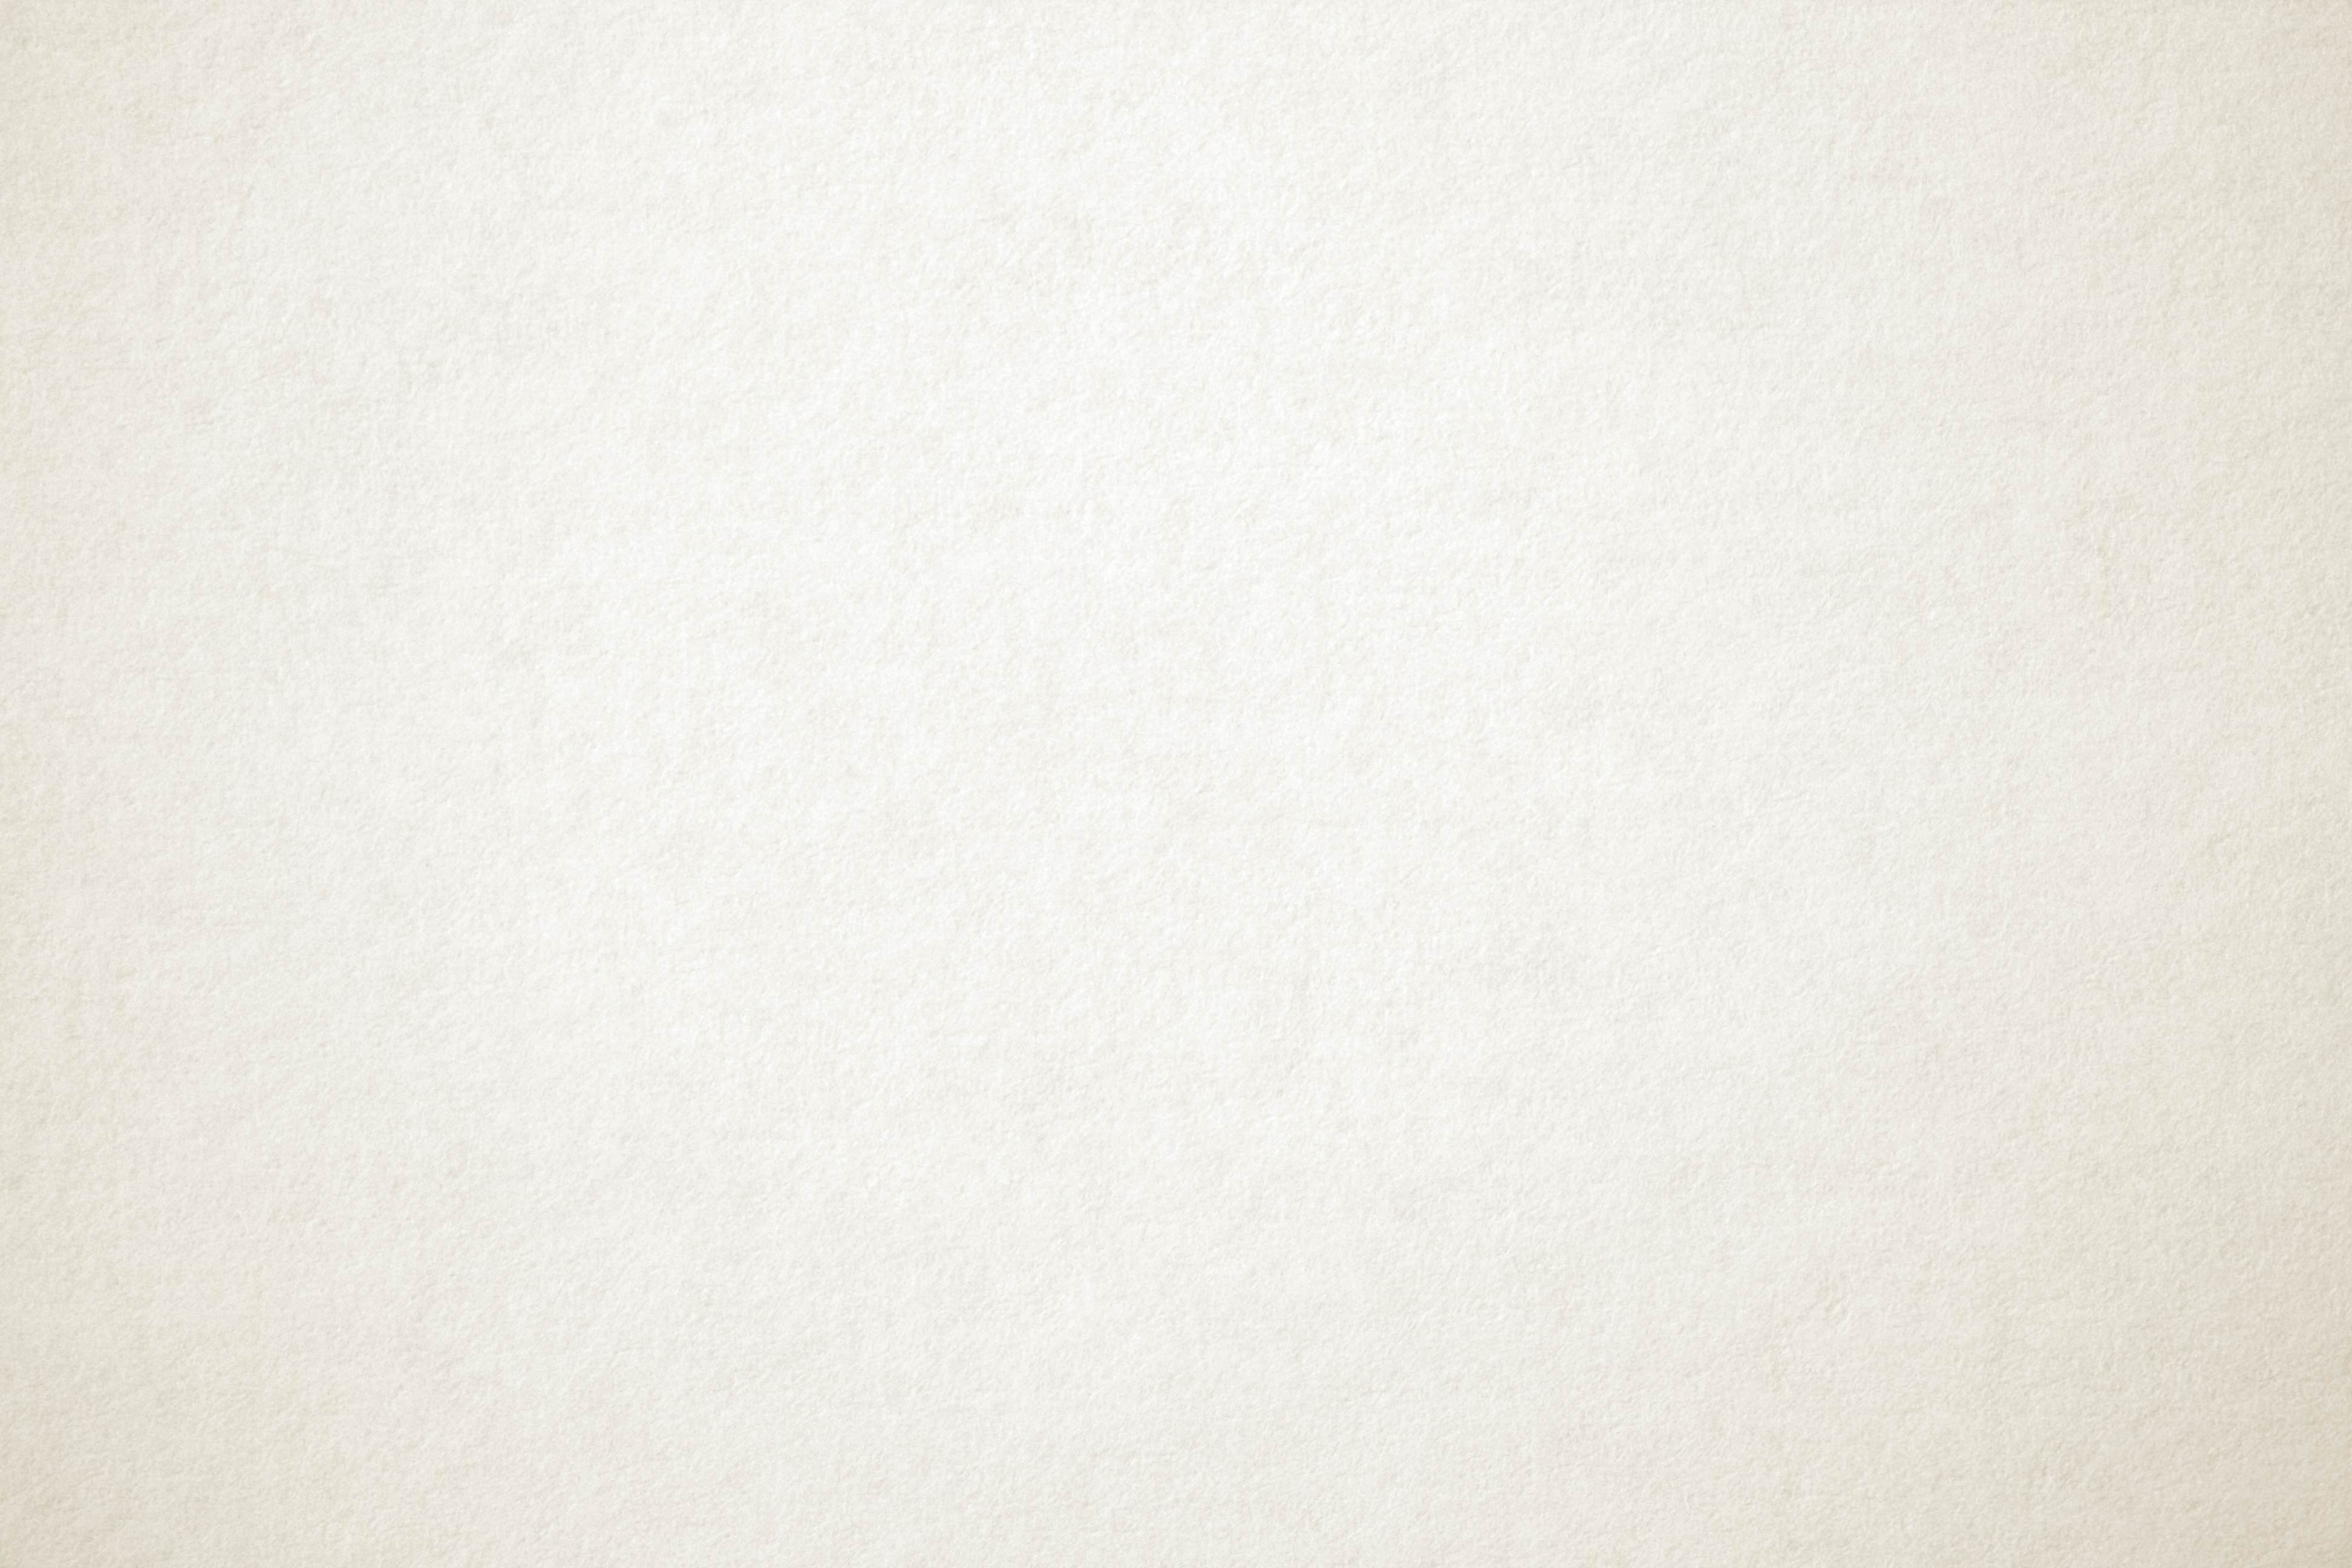 White Paper Textures Hd